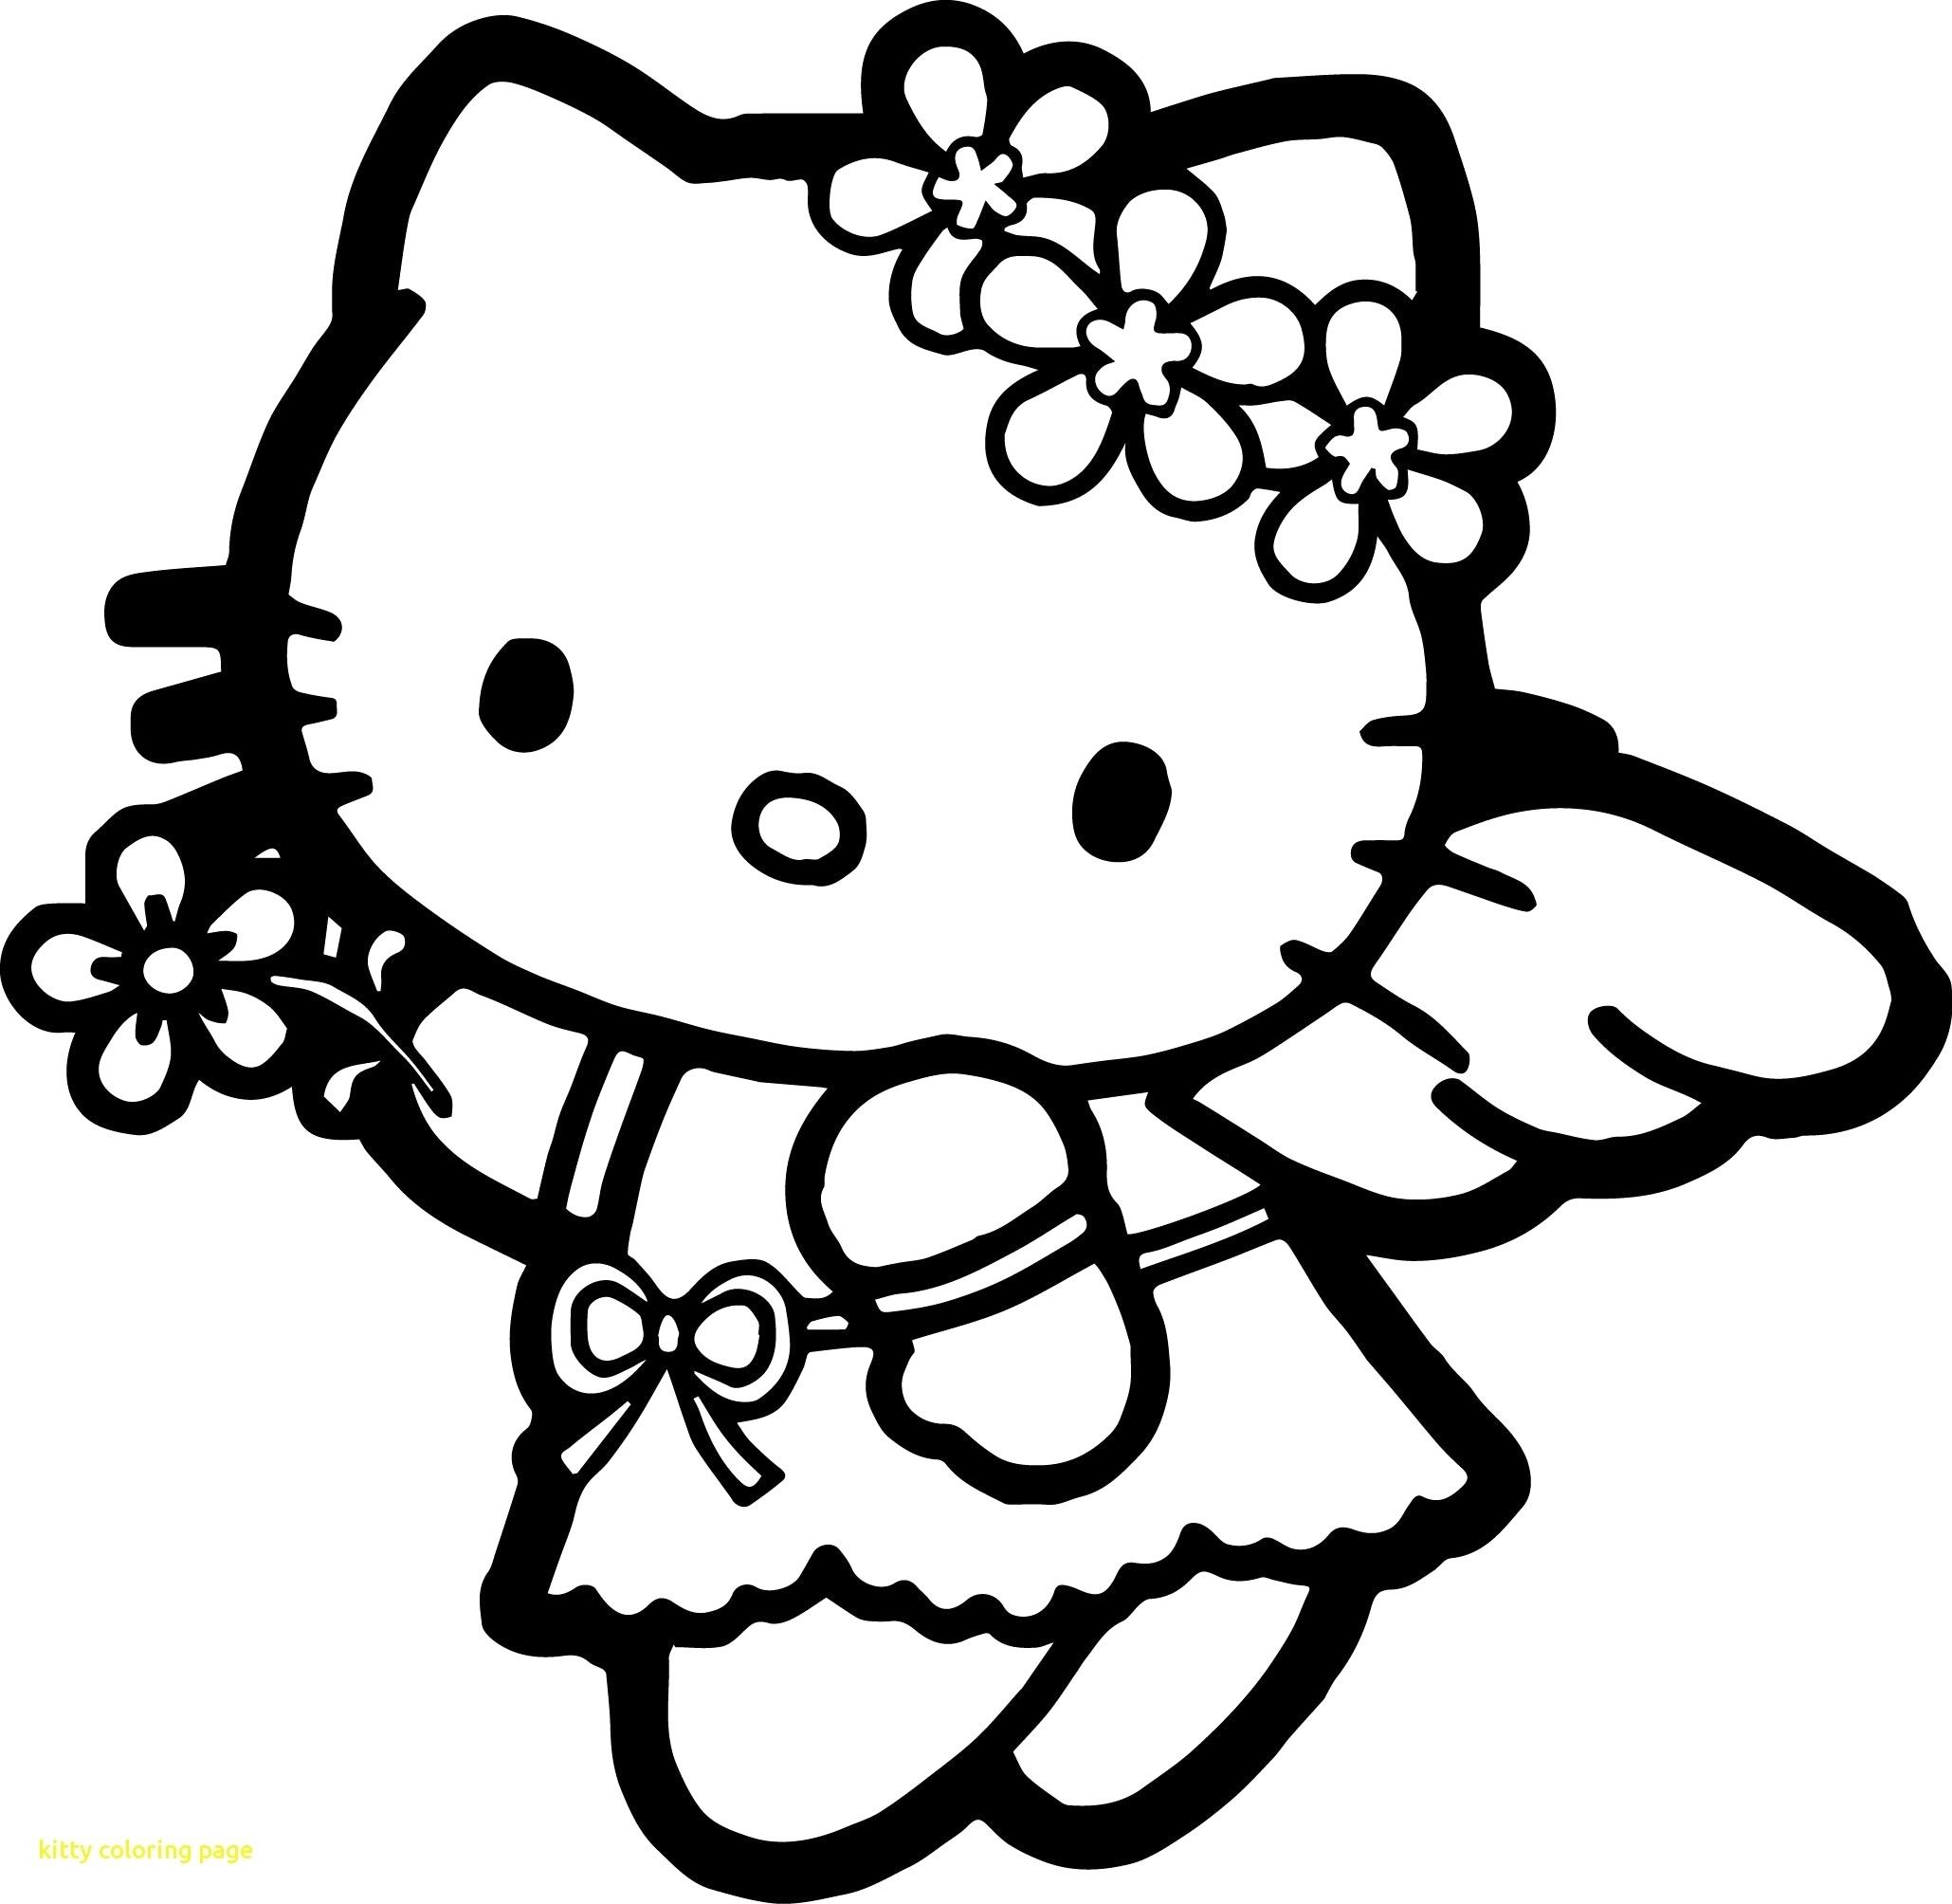 Hello Kitty Coloring Book Download Coloring Pages Allow Kids To Accompany Their Favorite Cha Hello Kitty Coloring Hello Kitty Colouring Pages Kitty Coloring